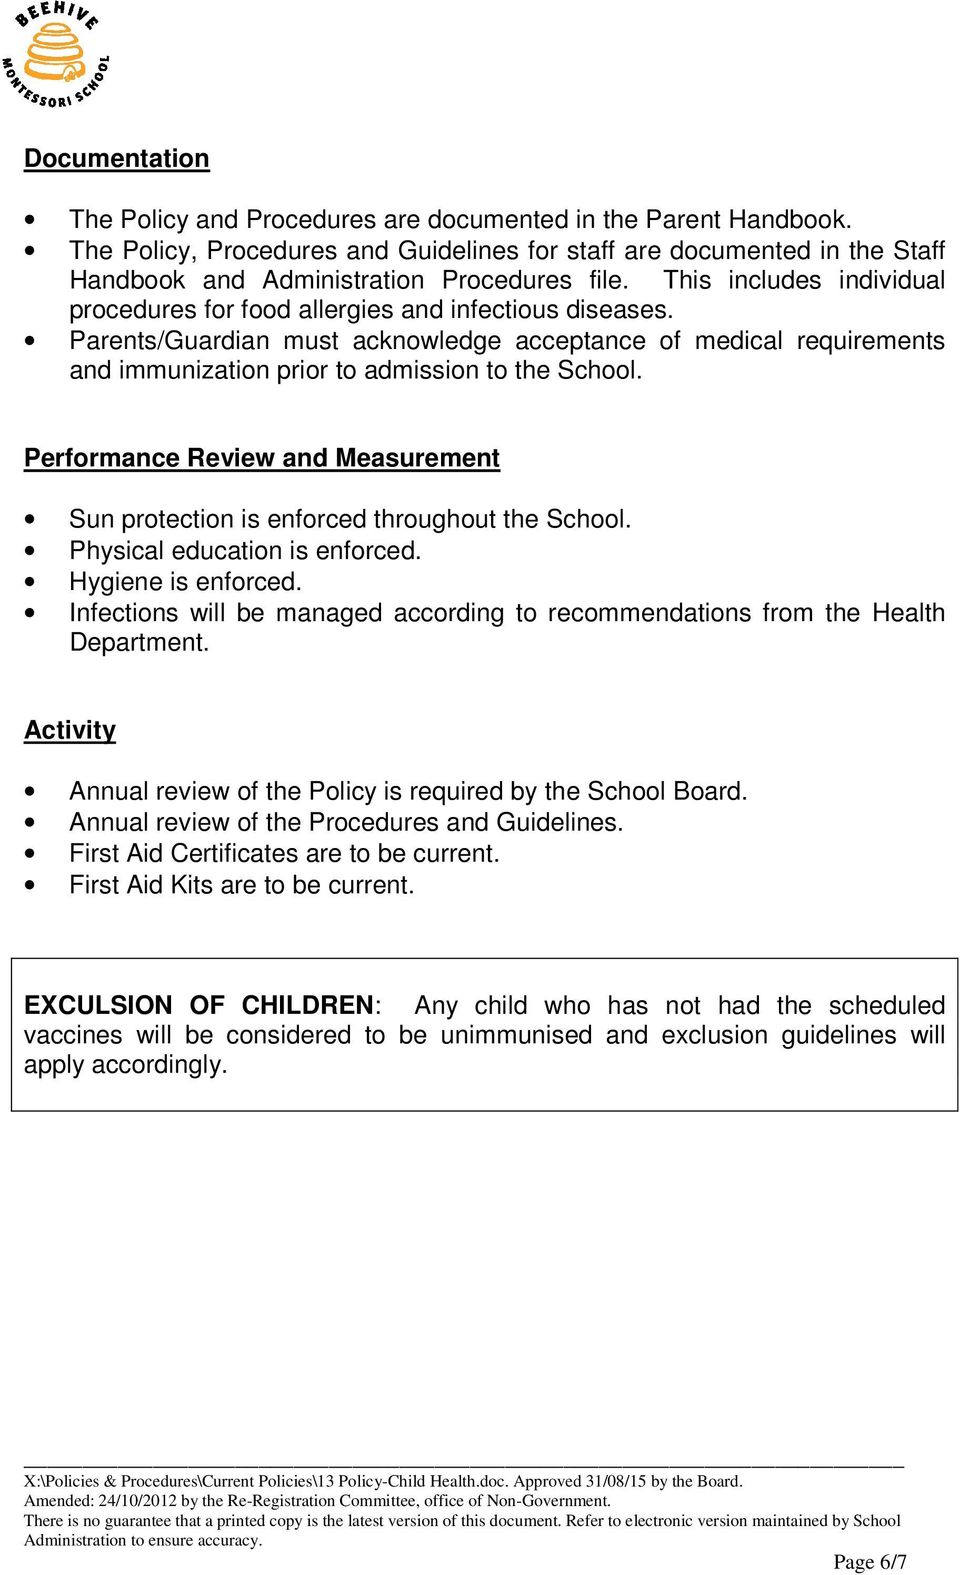 Performance Review and Measurement Sun protection is enforced throughout the School. Physical education is enforced. Hygiene is enforced.